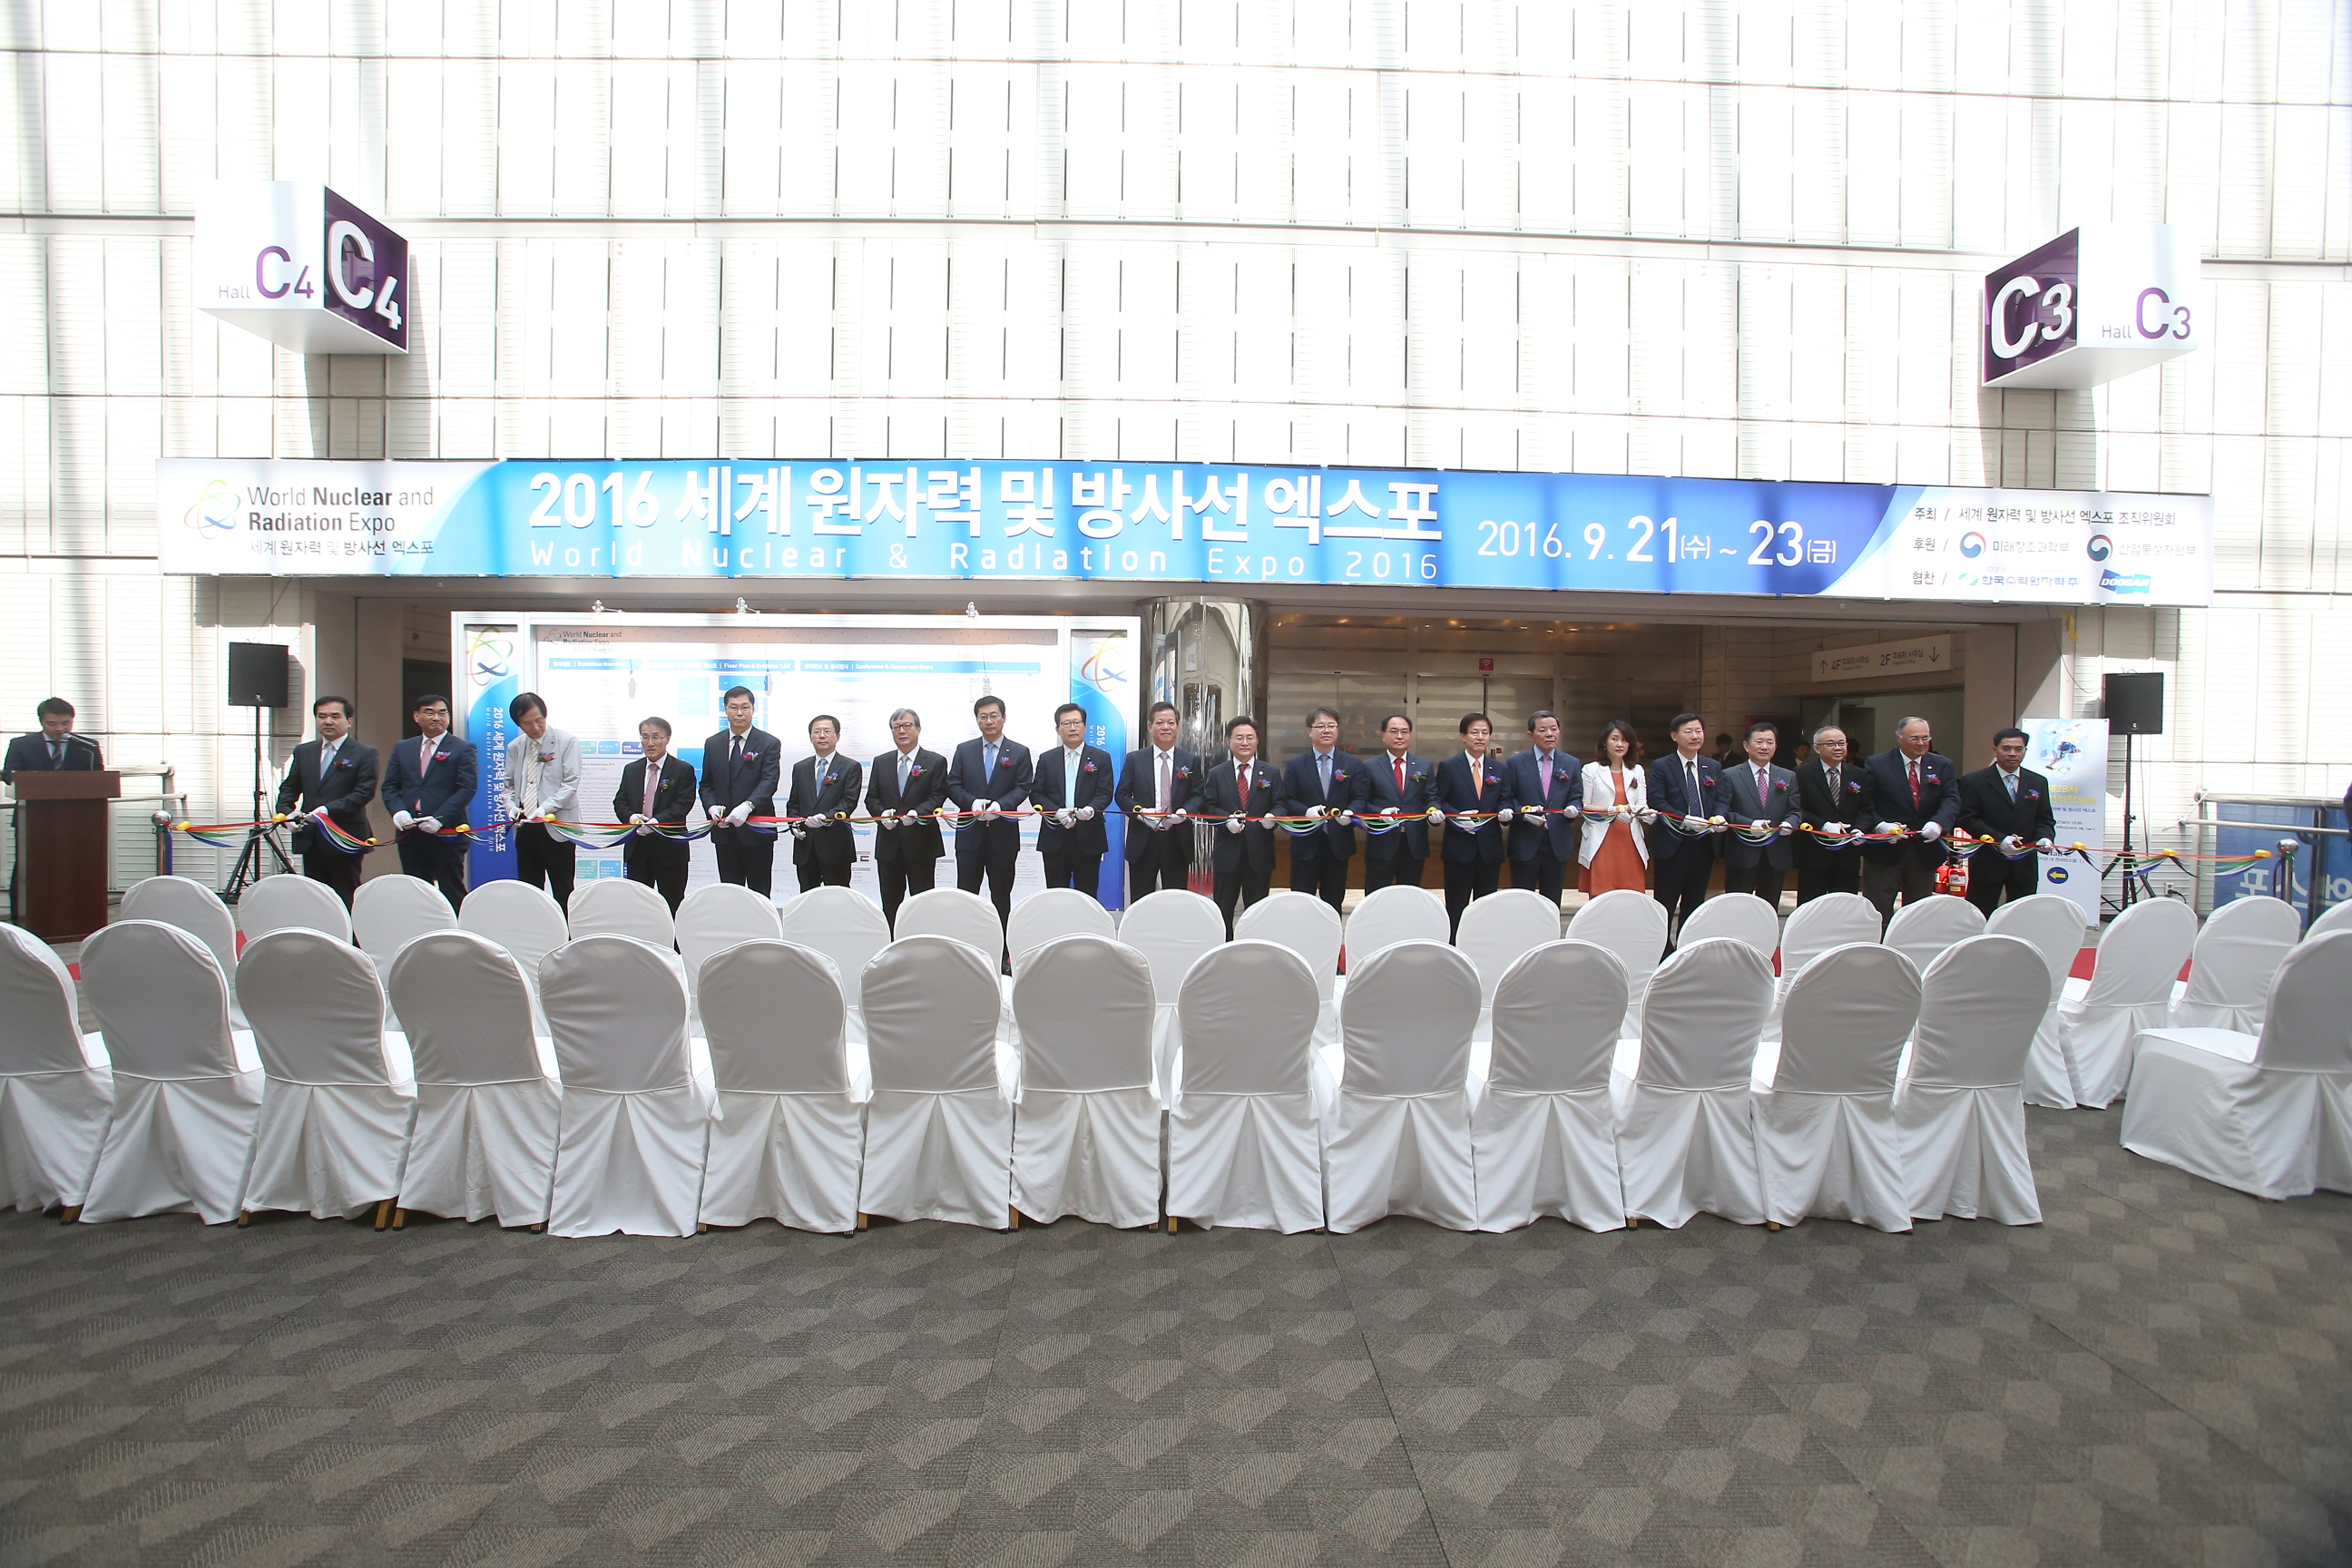 World Nuclear and Radiation Expo Korea ::